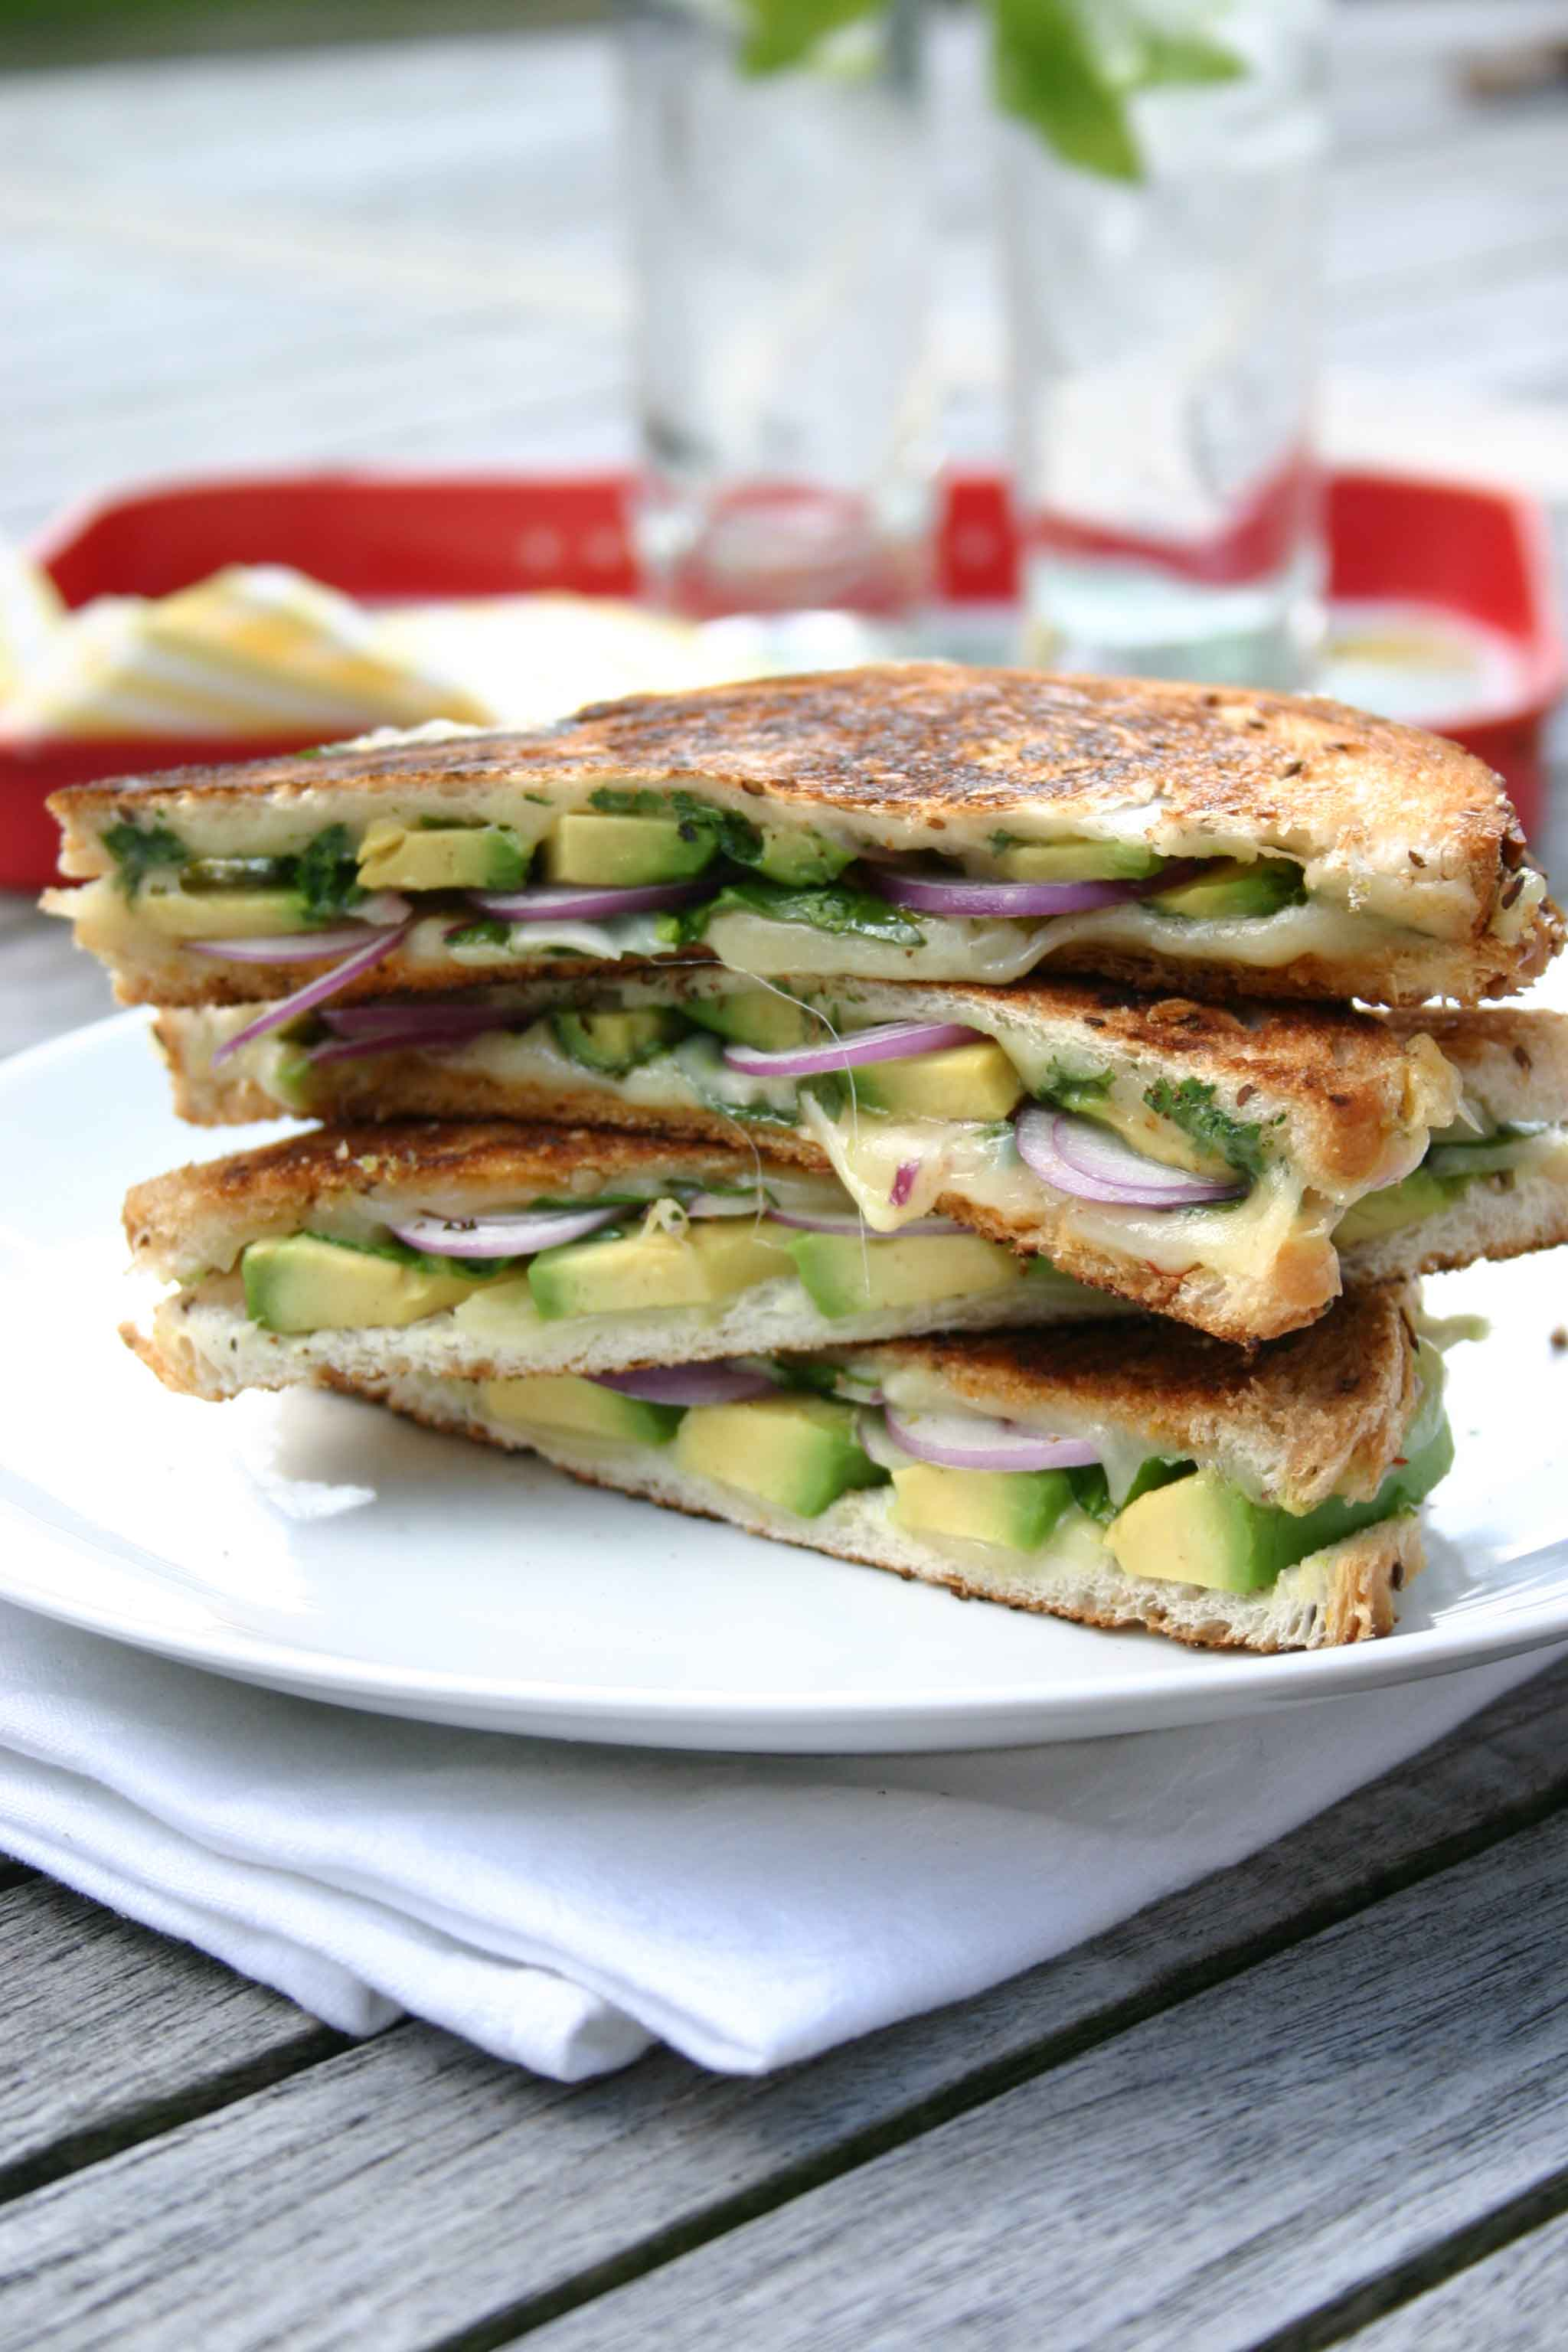 Grilled cheese sandwich met avocado